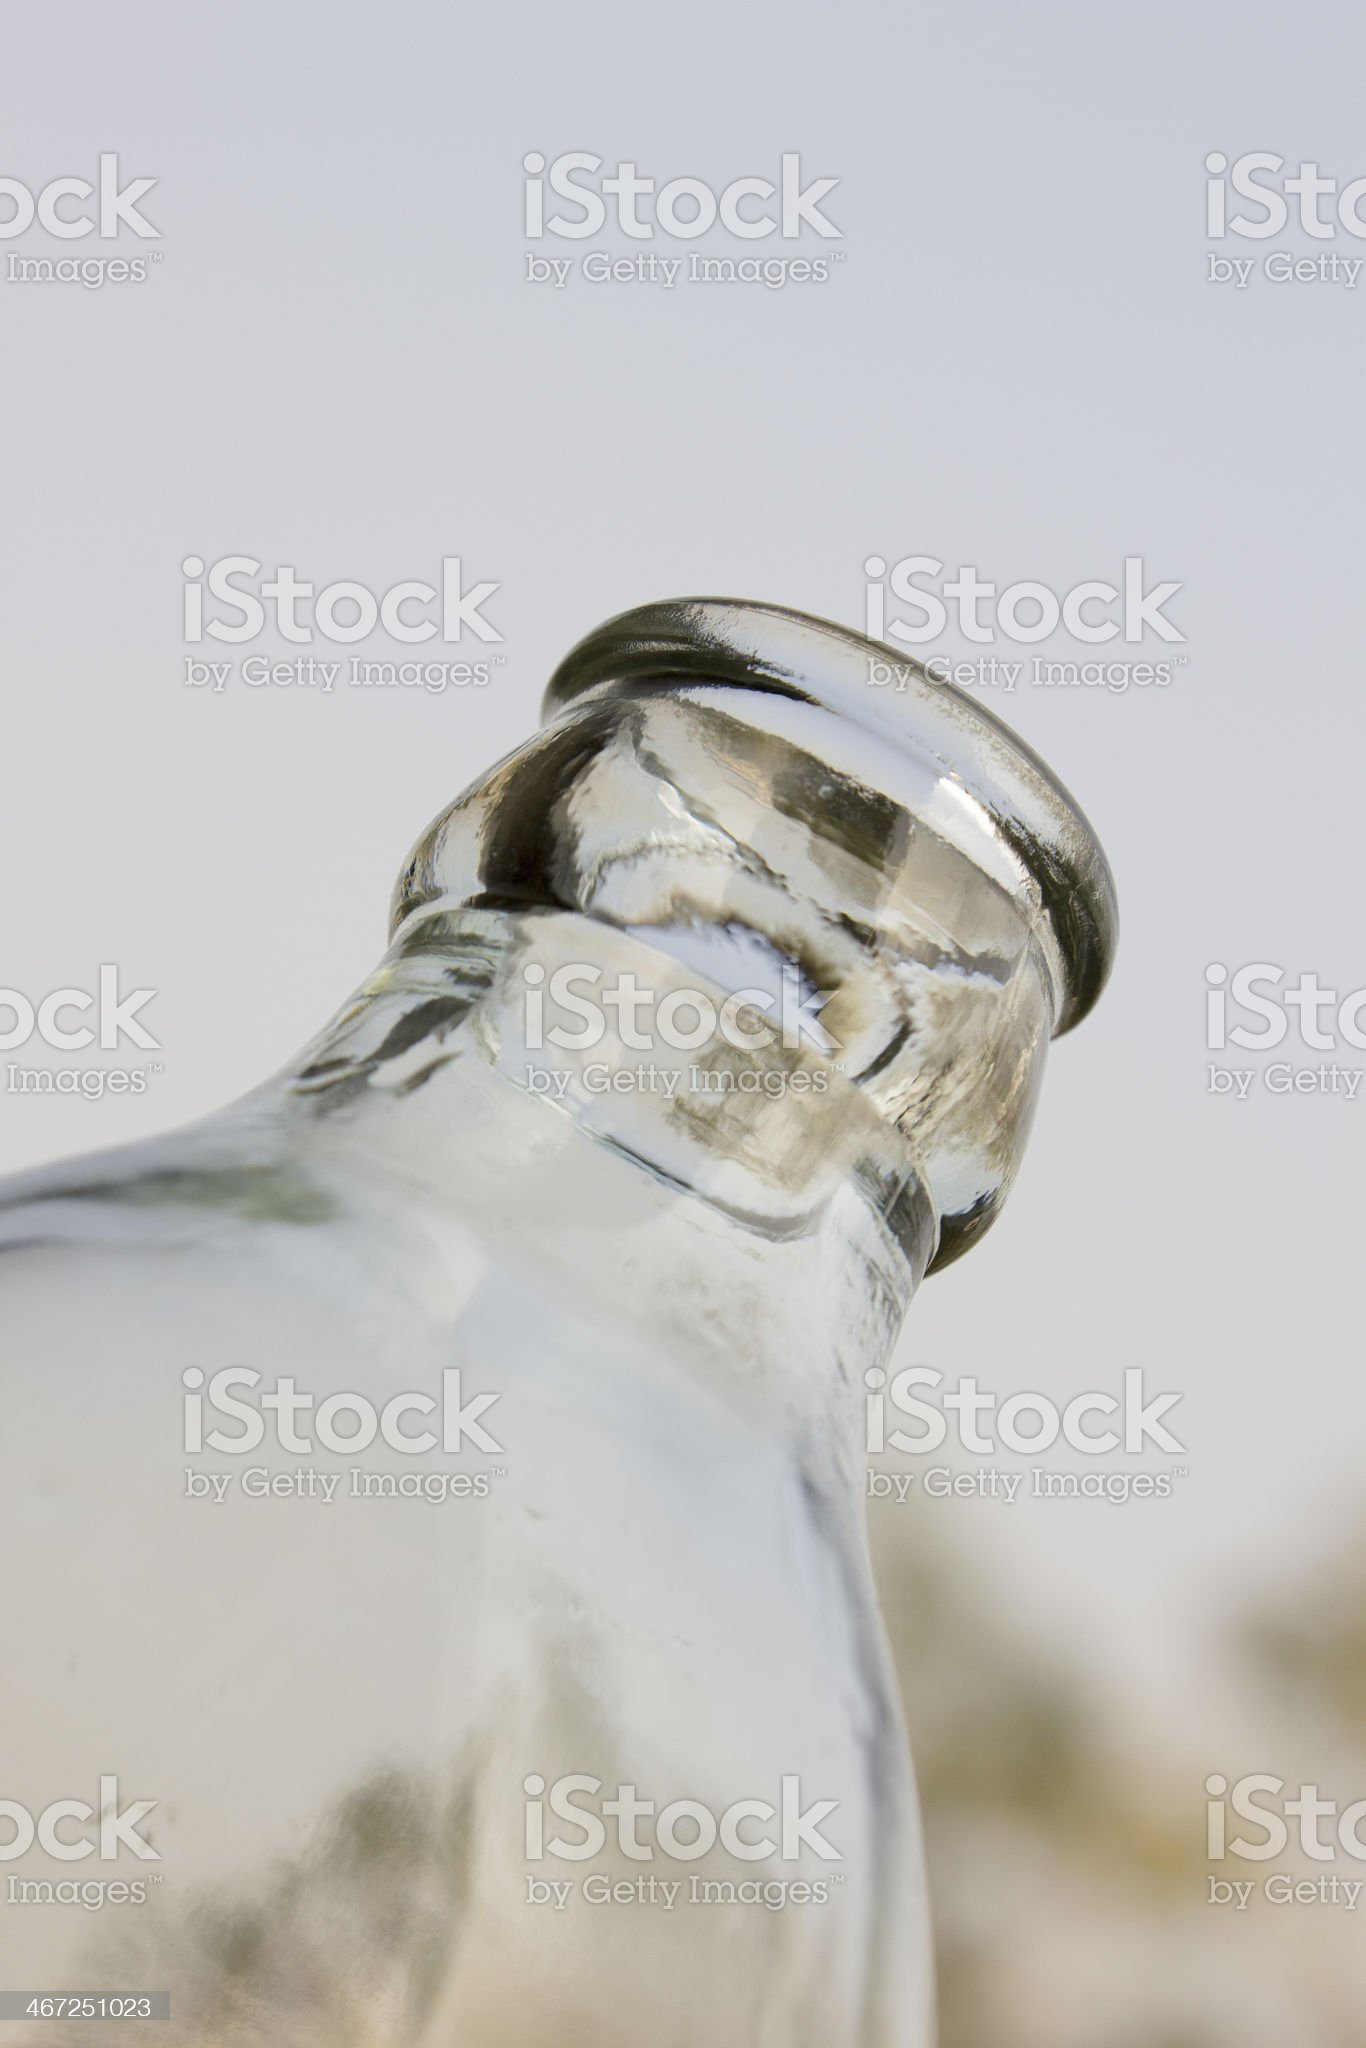 Close up glass bottle royalty-free stock photo